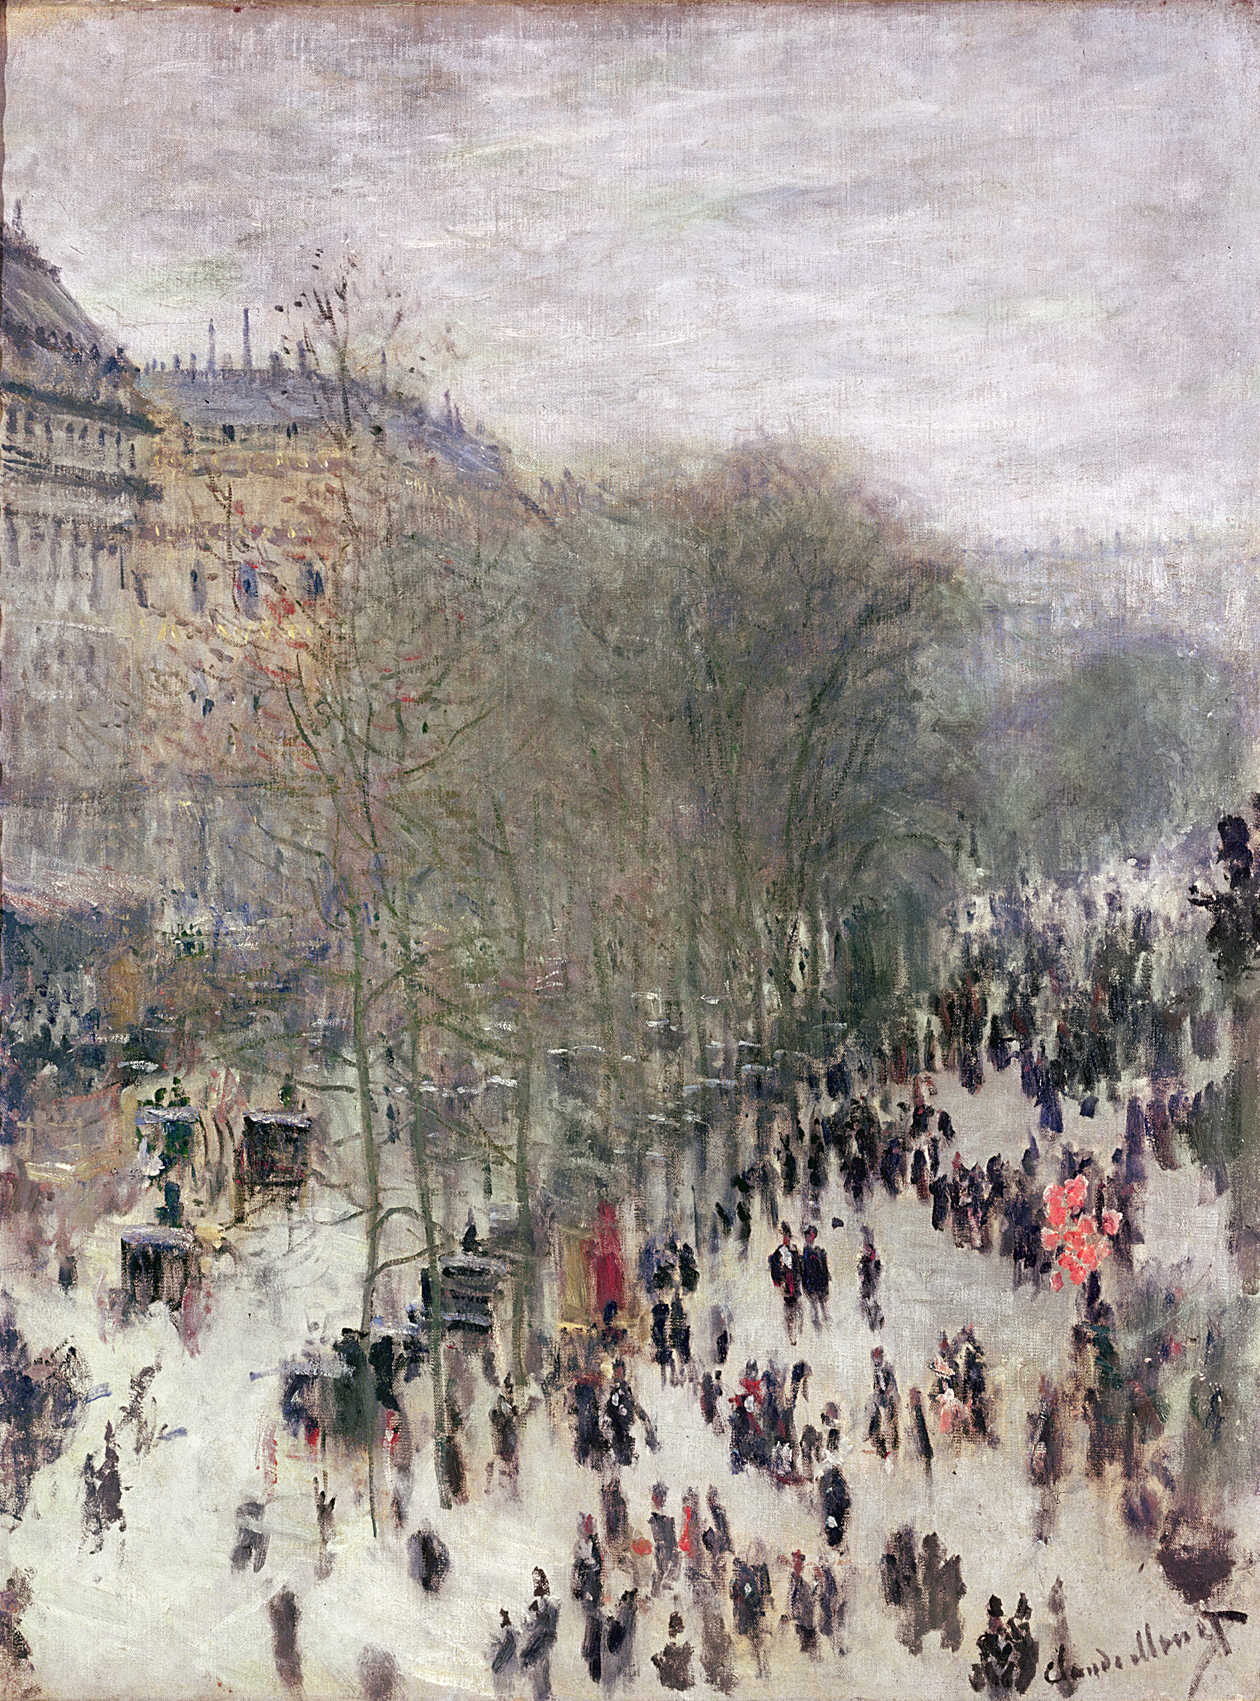 Boulevard des Capucines, by Claude Monet, c. 1873. Nelson-Atkins Museum of Art, Kansas City, Missouri.